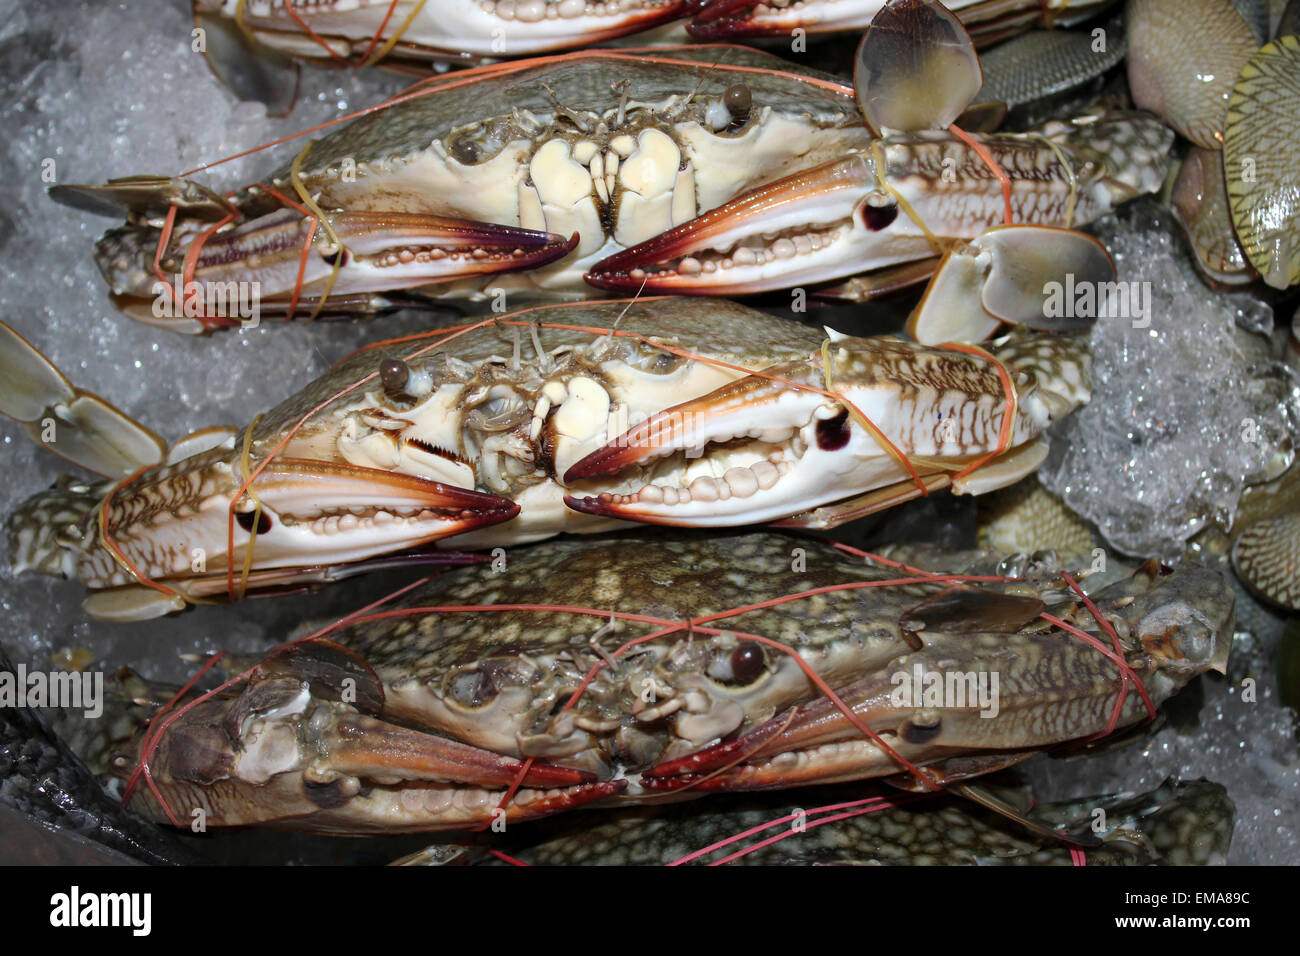 Fresh Crabs On Ice For Sale In A Thailand Market - Stock Image